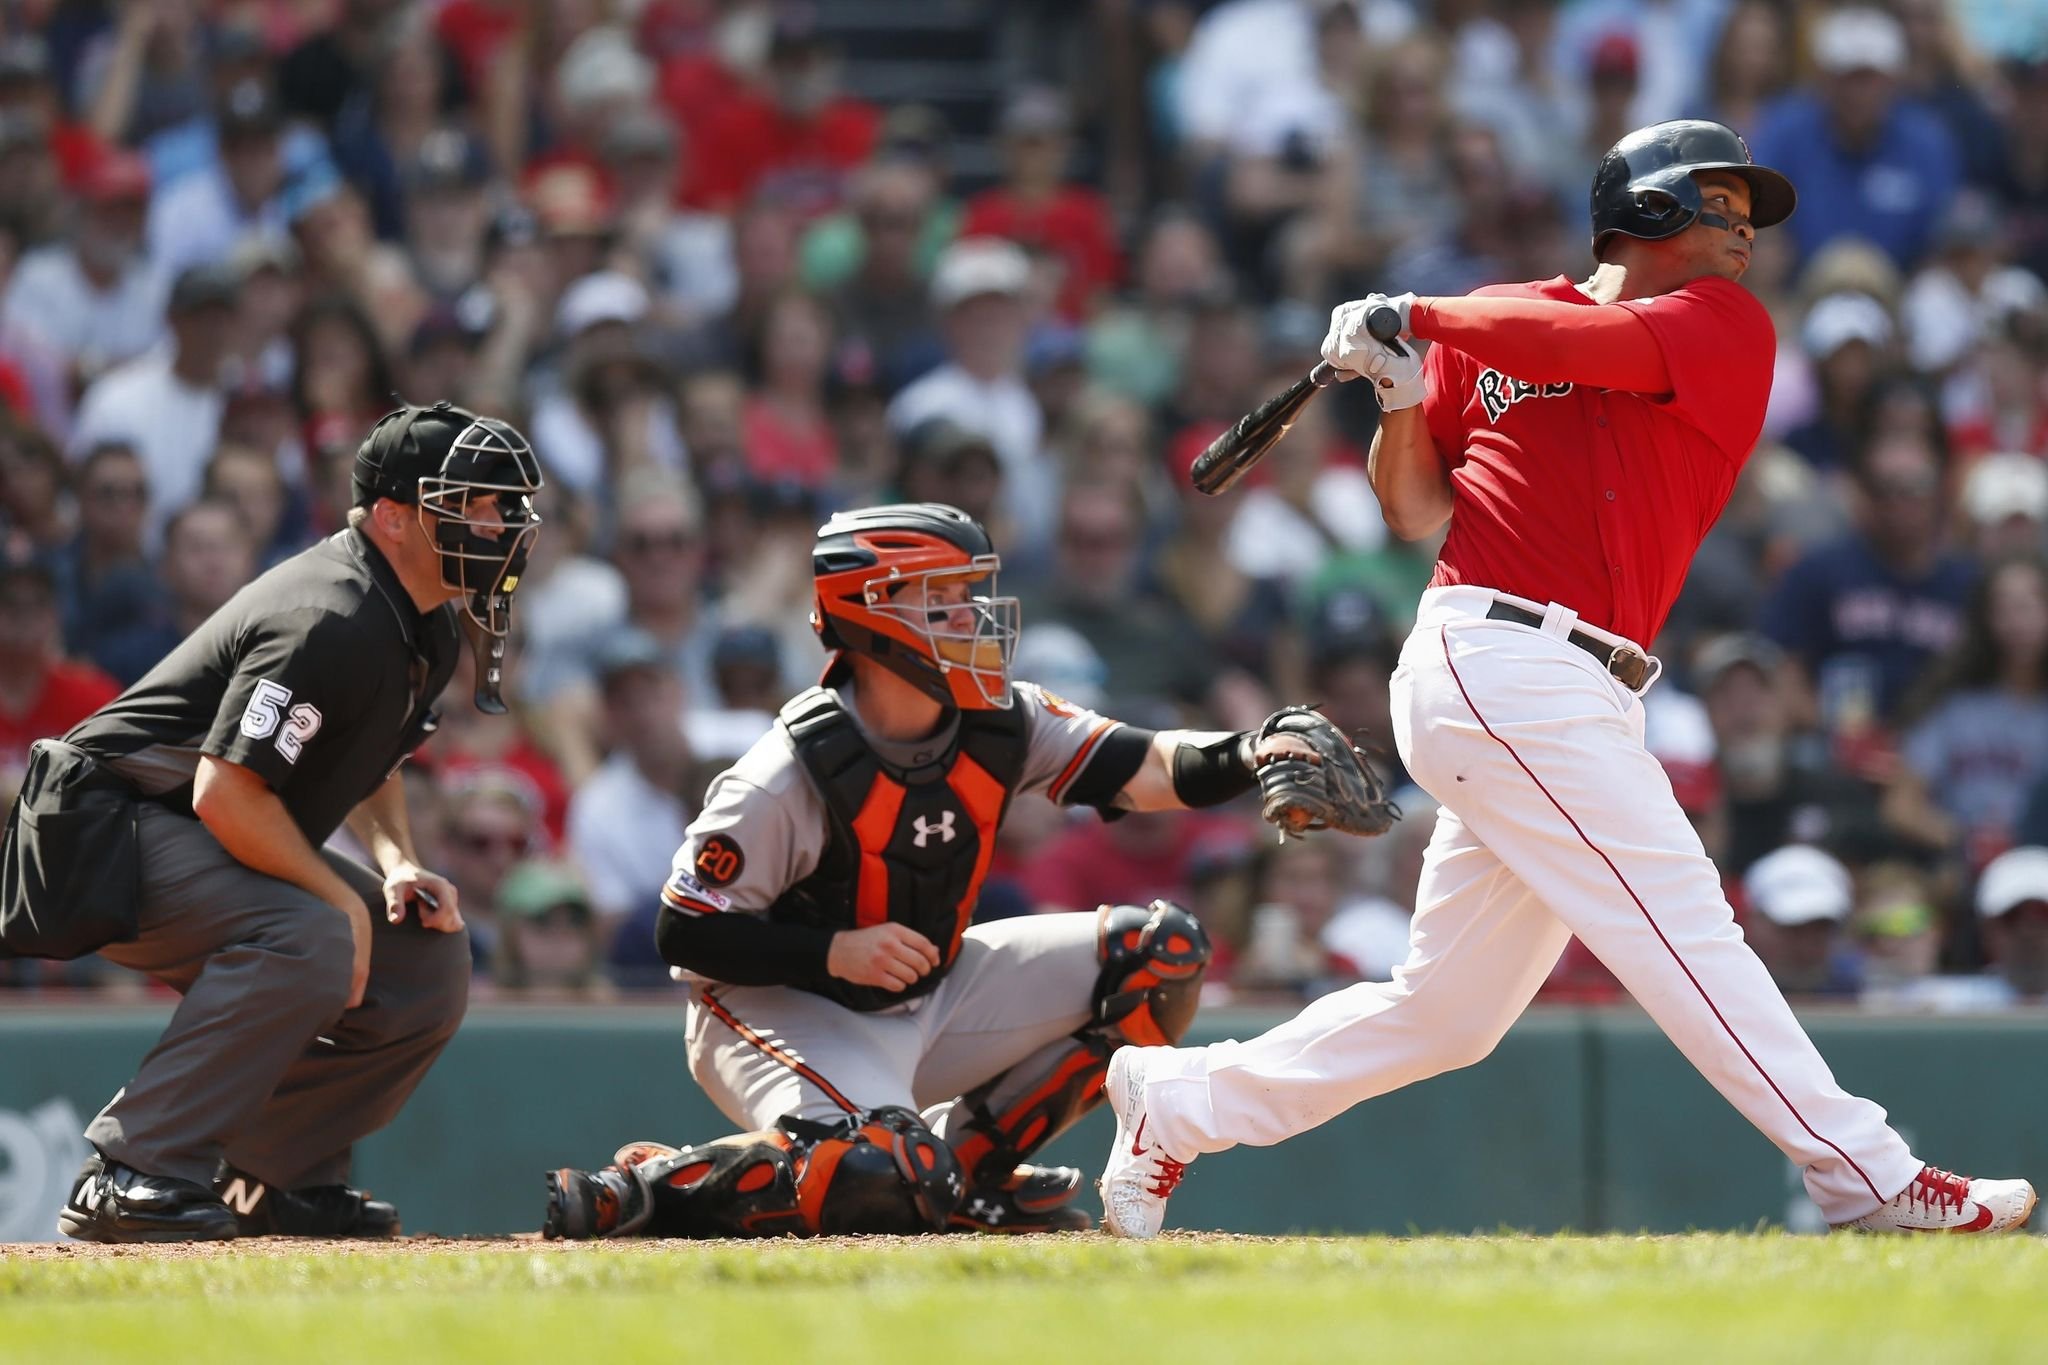 Orioles_red_sox_baseball_75049_s2048x1365